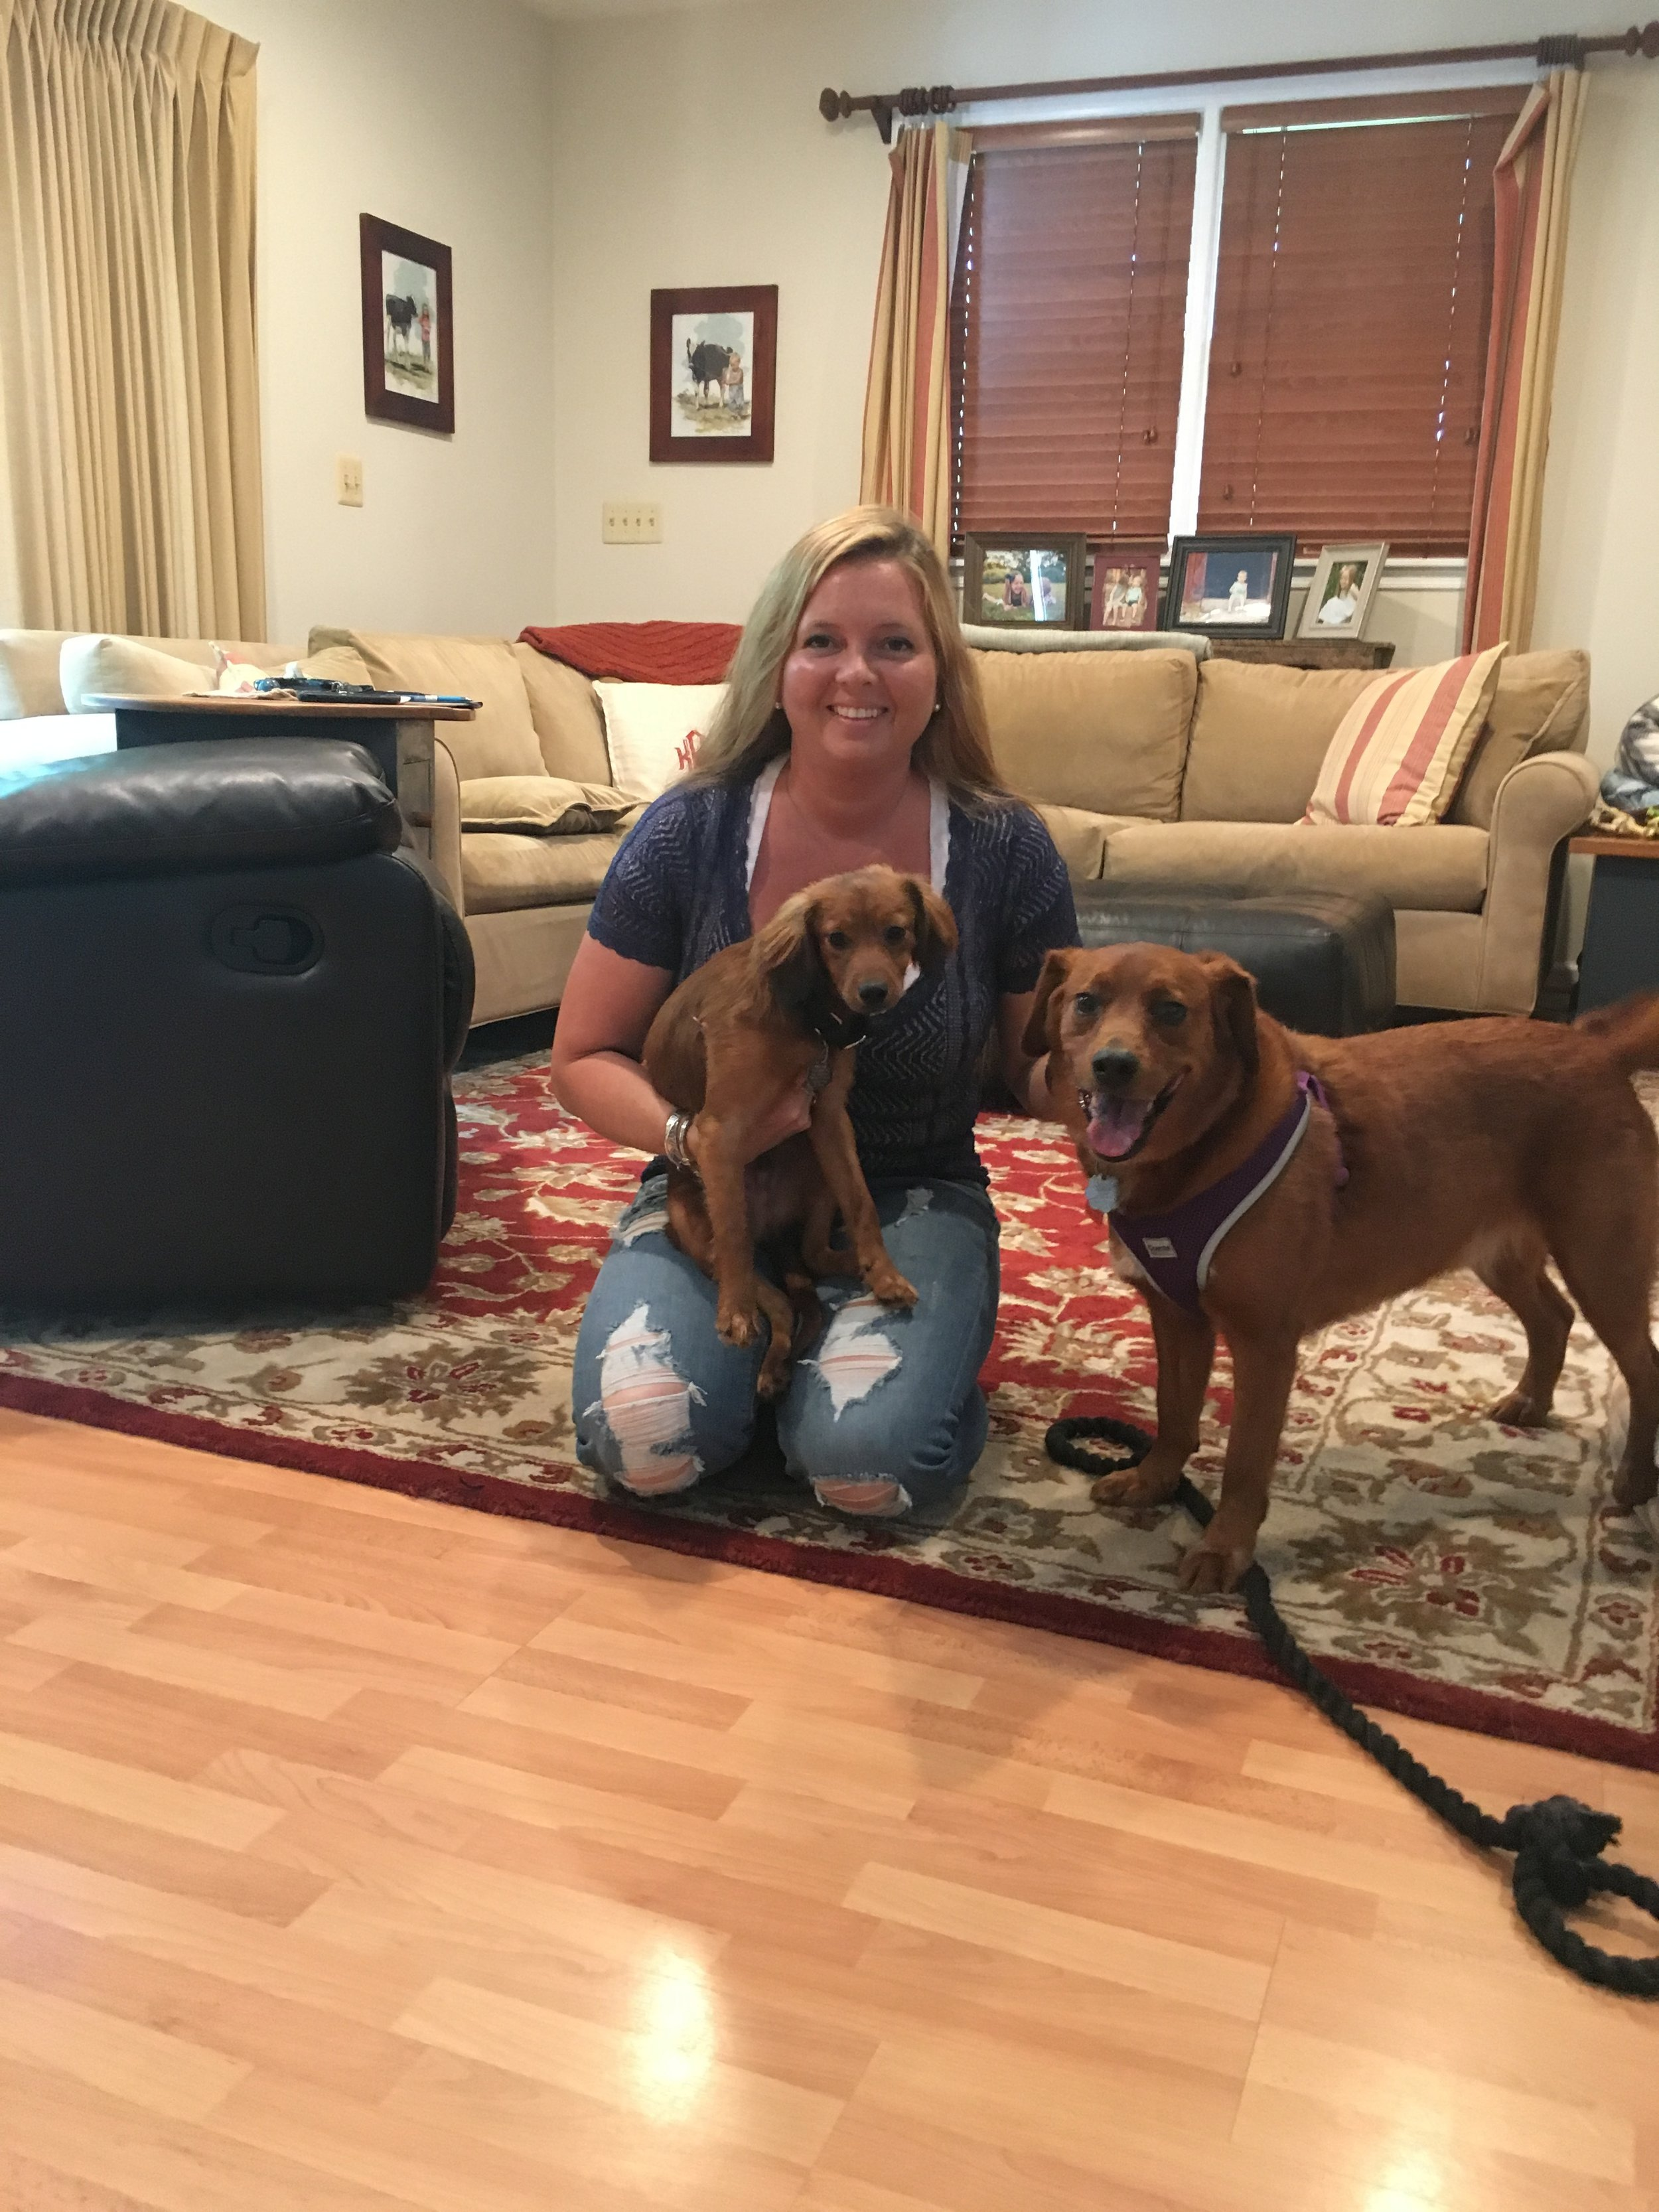 Bailey (now Hashbrown, left) with his new mom and fur brother!